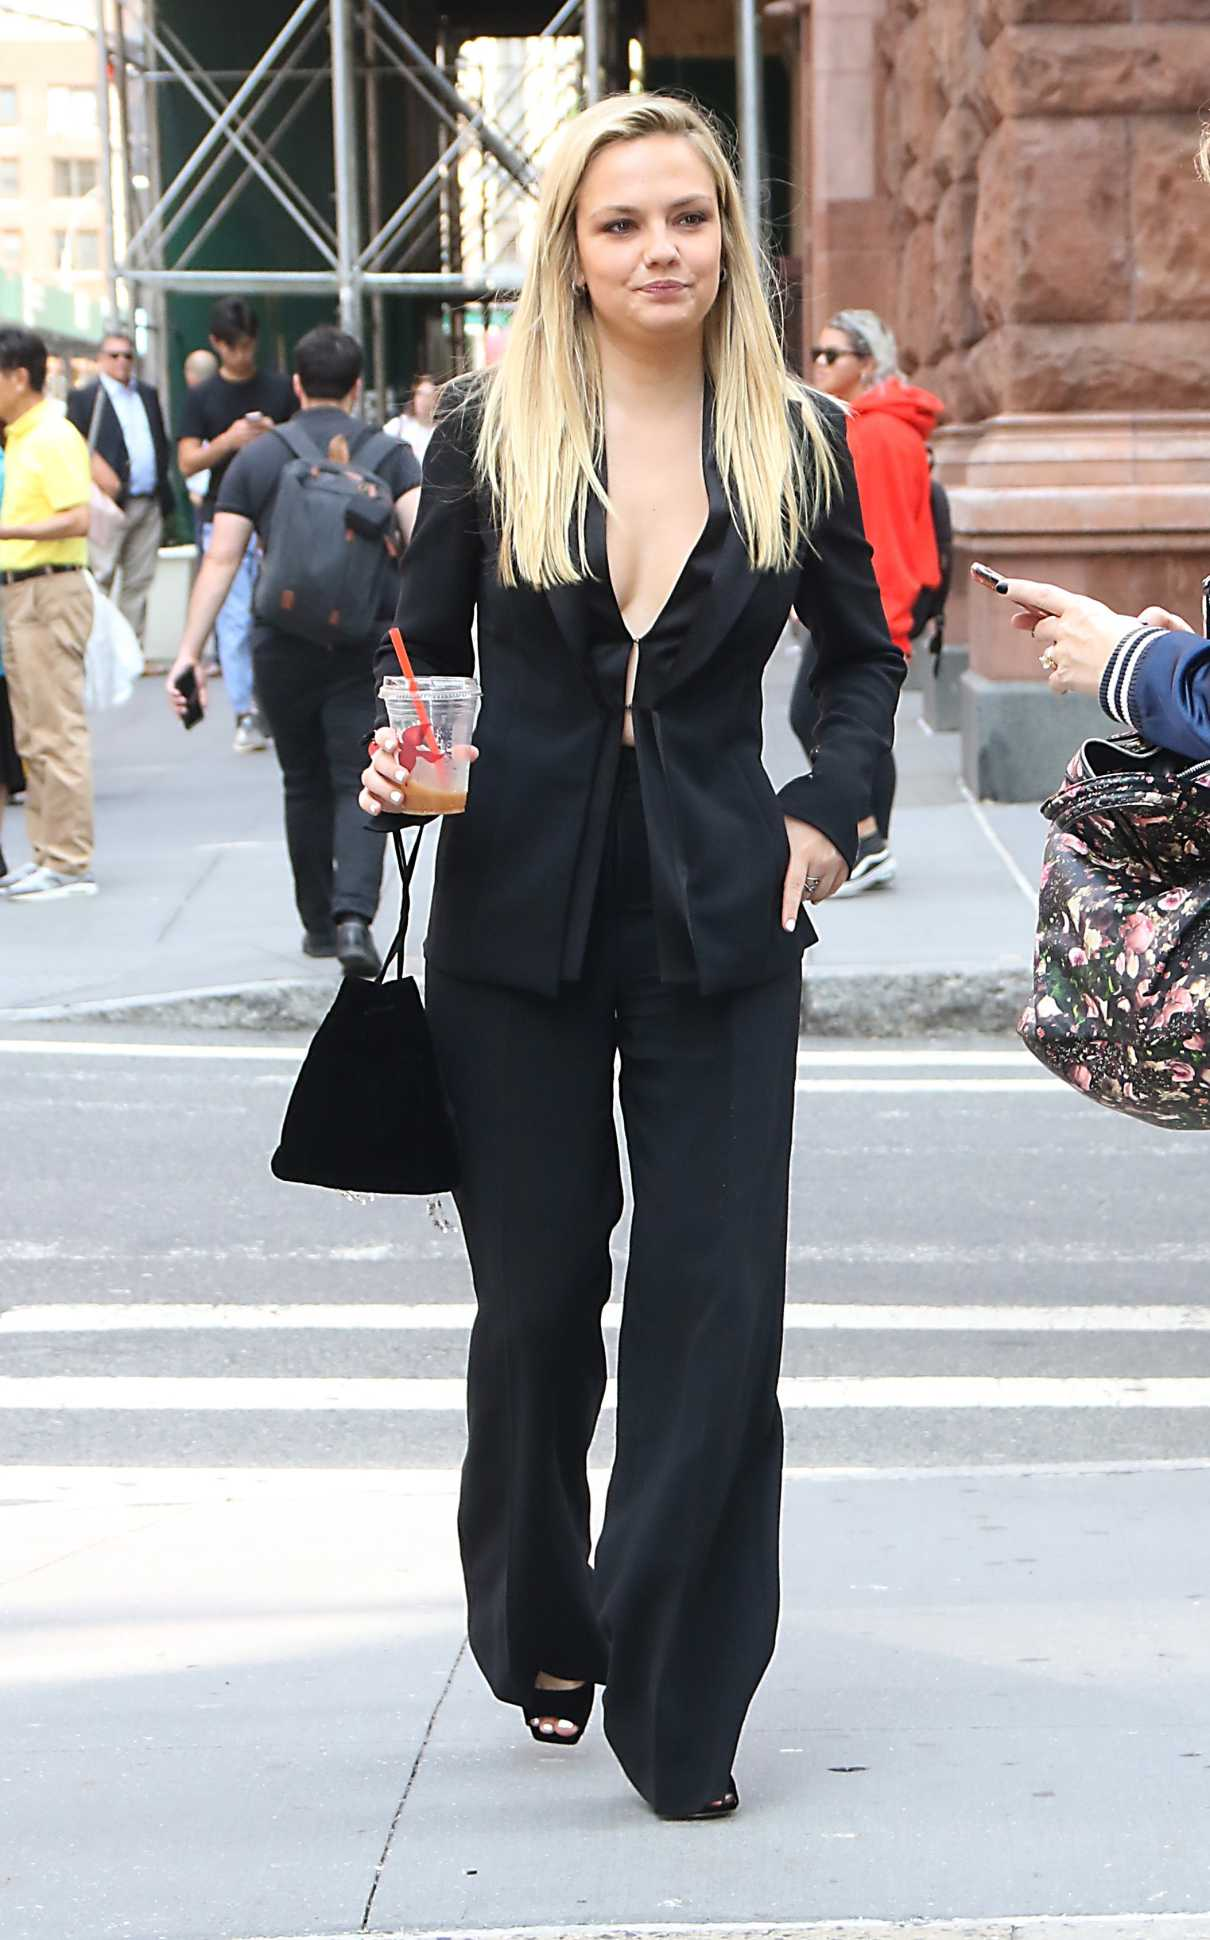 Emily Meade in a Black Suit